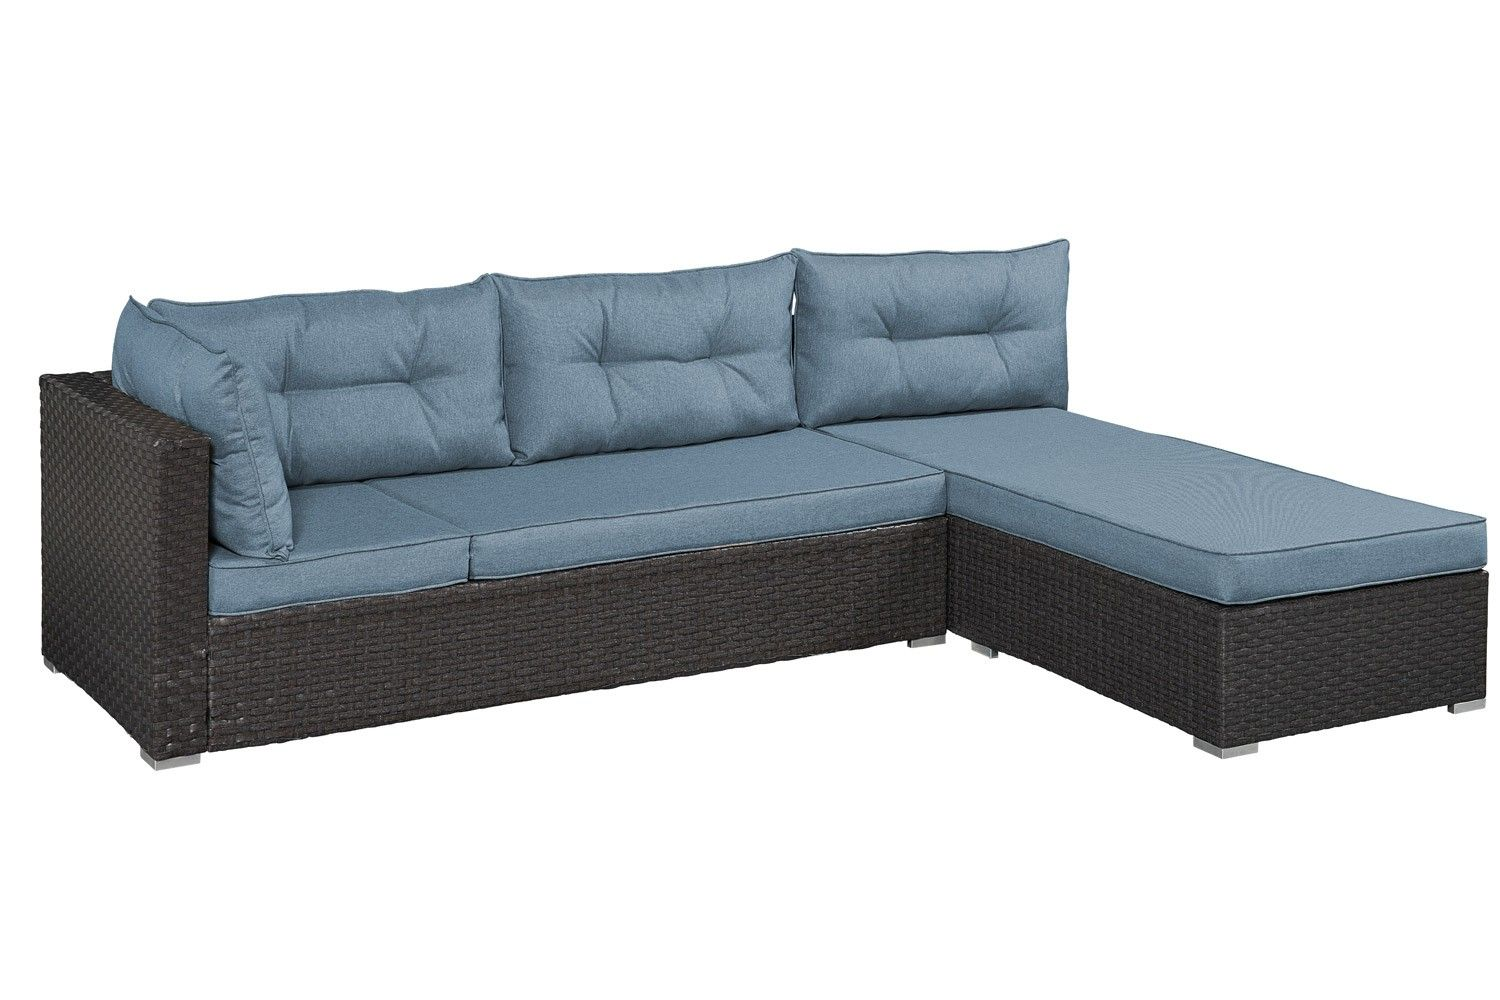 Outdoor Futon Sofa Bed Sectional Andronis Frames